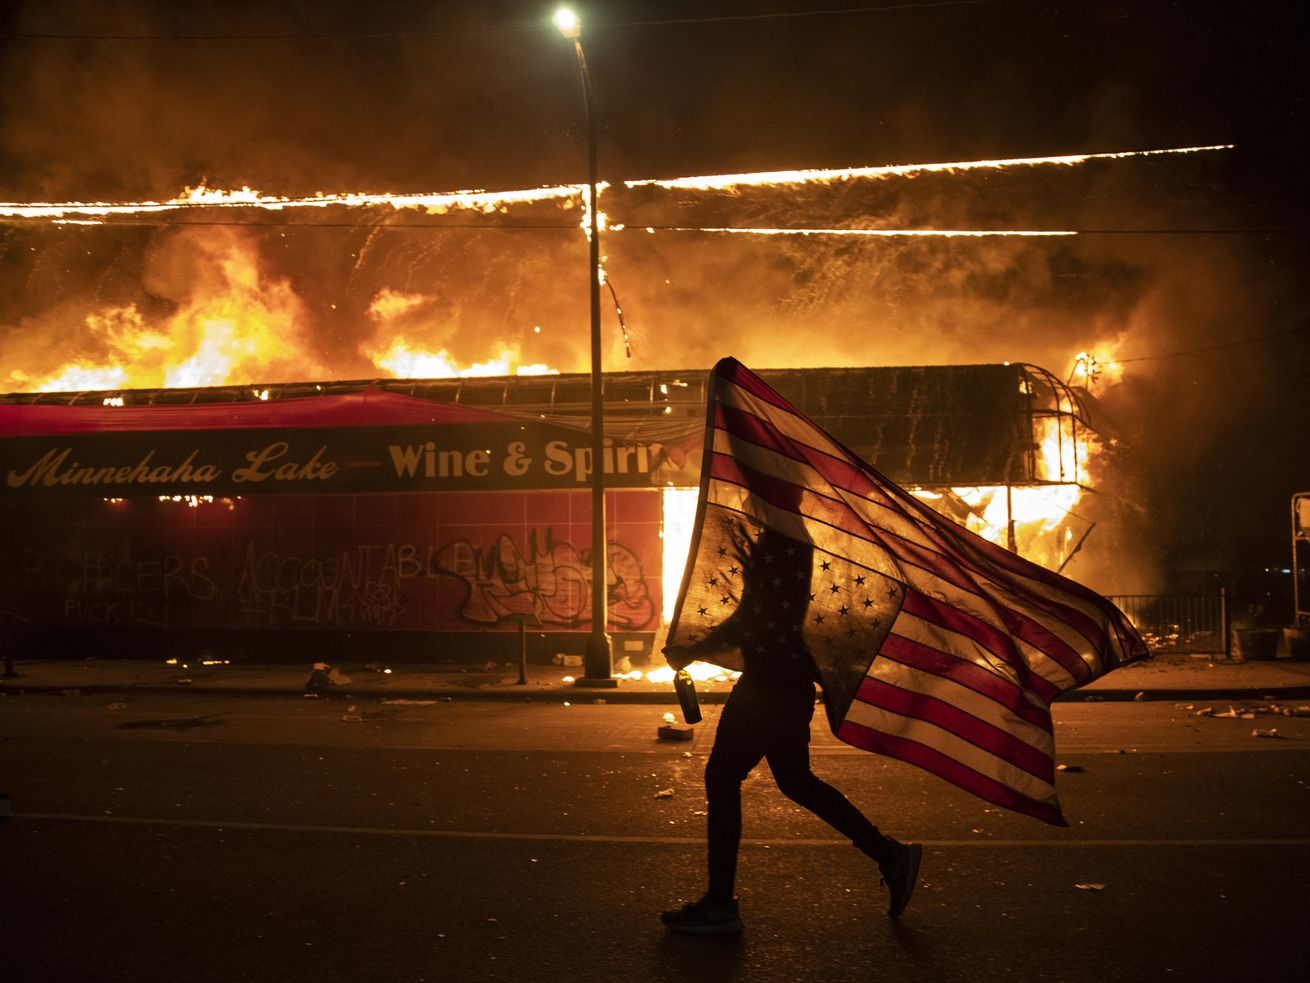 A protester carries a U.S. flag upside down, a sign of distress, next to a burning building, May 28, 2020, in Minneapolis. Protests over the death of George Floyd, a black man who died in police custody, broke out in Minneapolis for a third straight night. The image was part of a series of photographs by The Associated Press that won the 2021 Pulitzer Prize for breaking news photography.